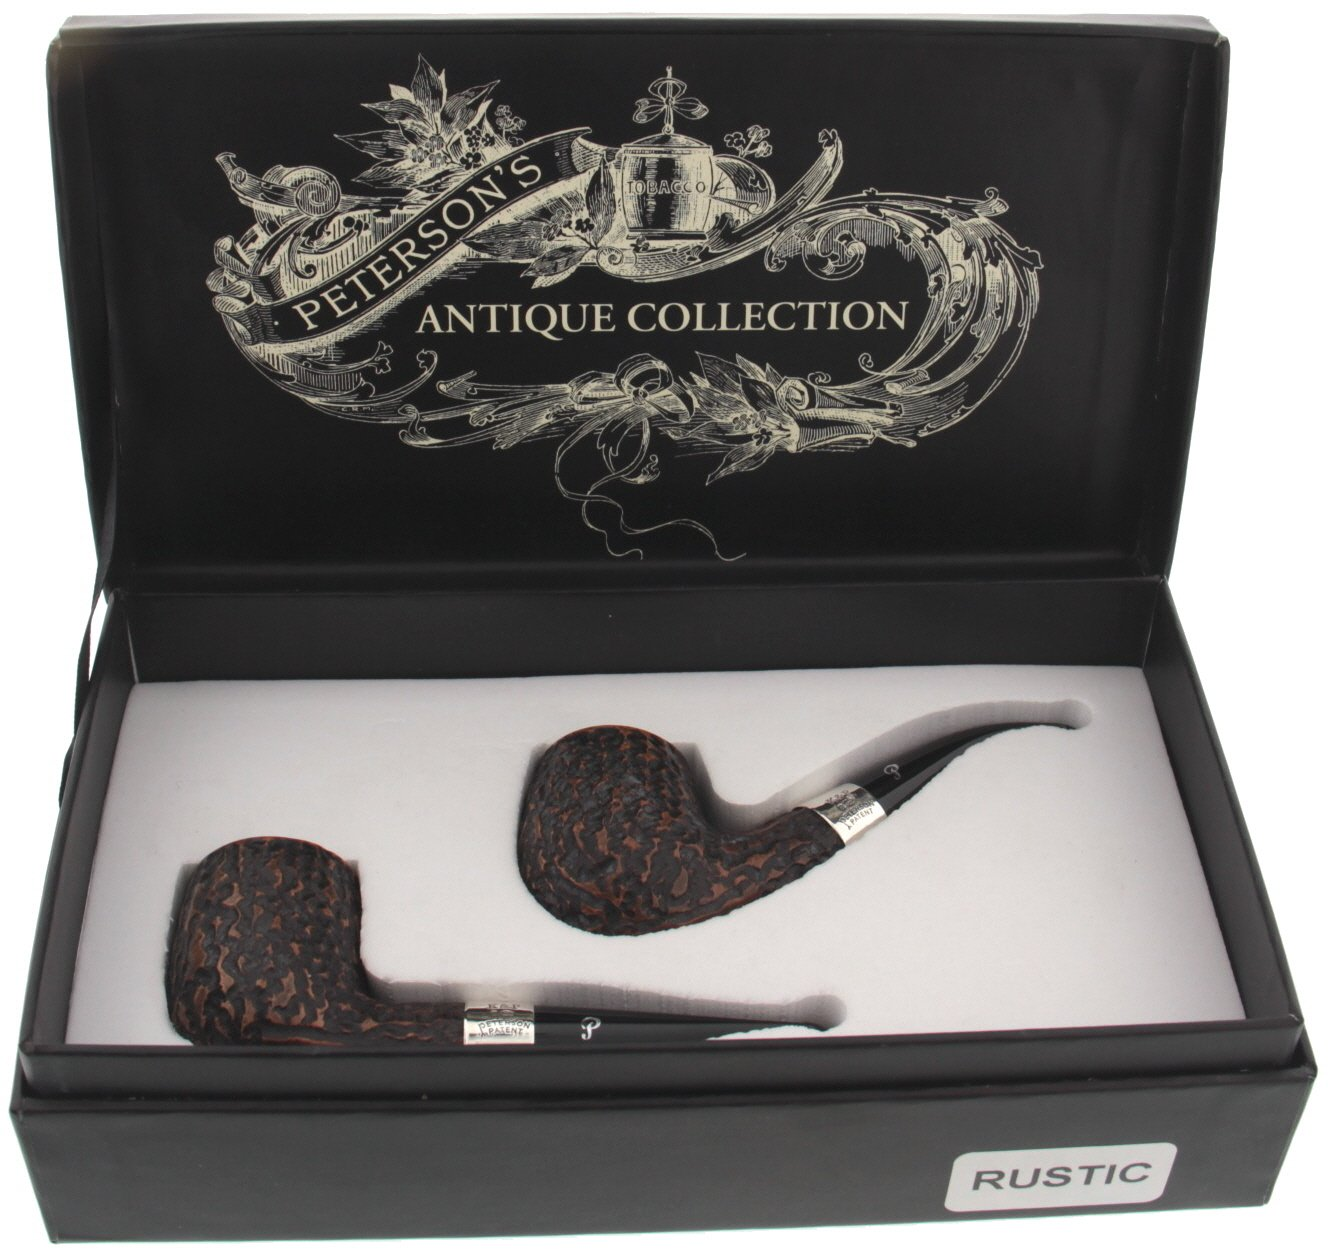 Peterson Antique Collection rustic